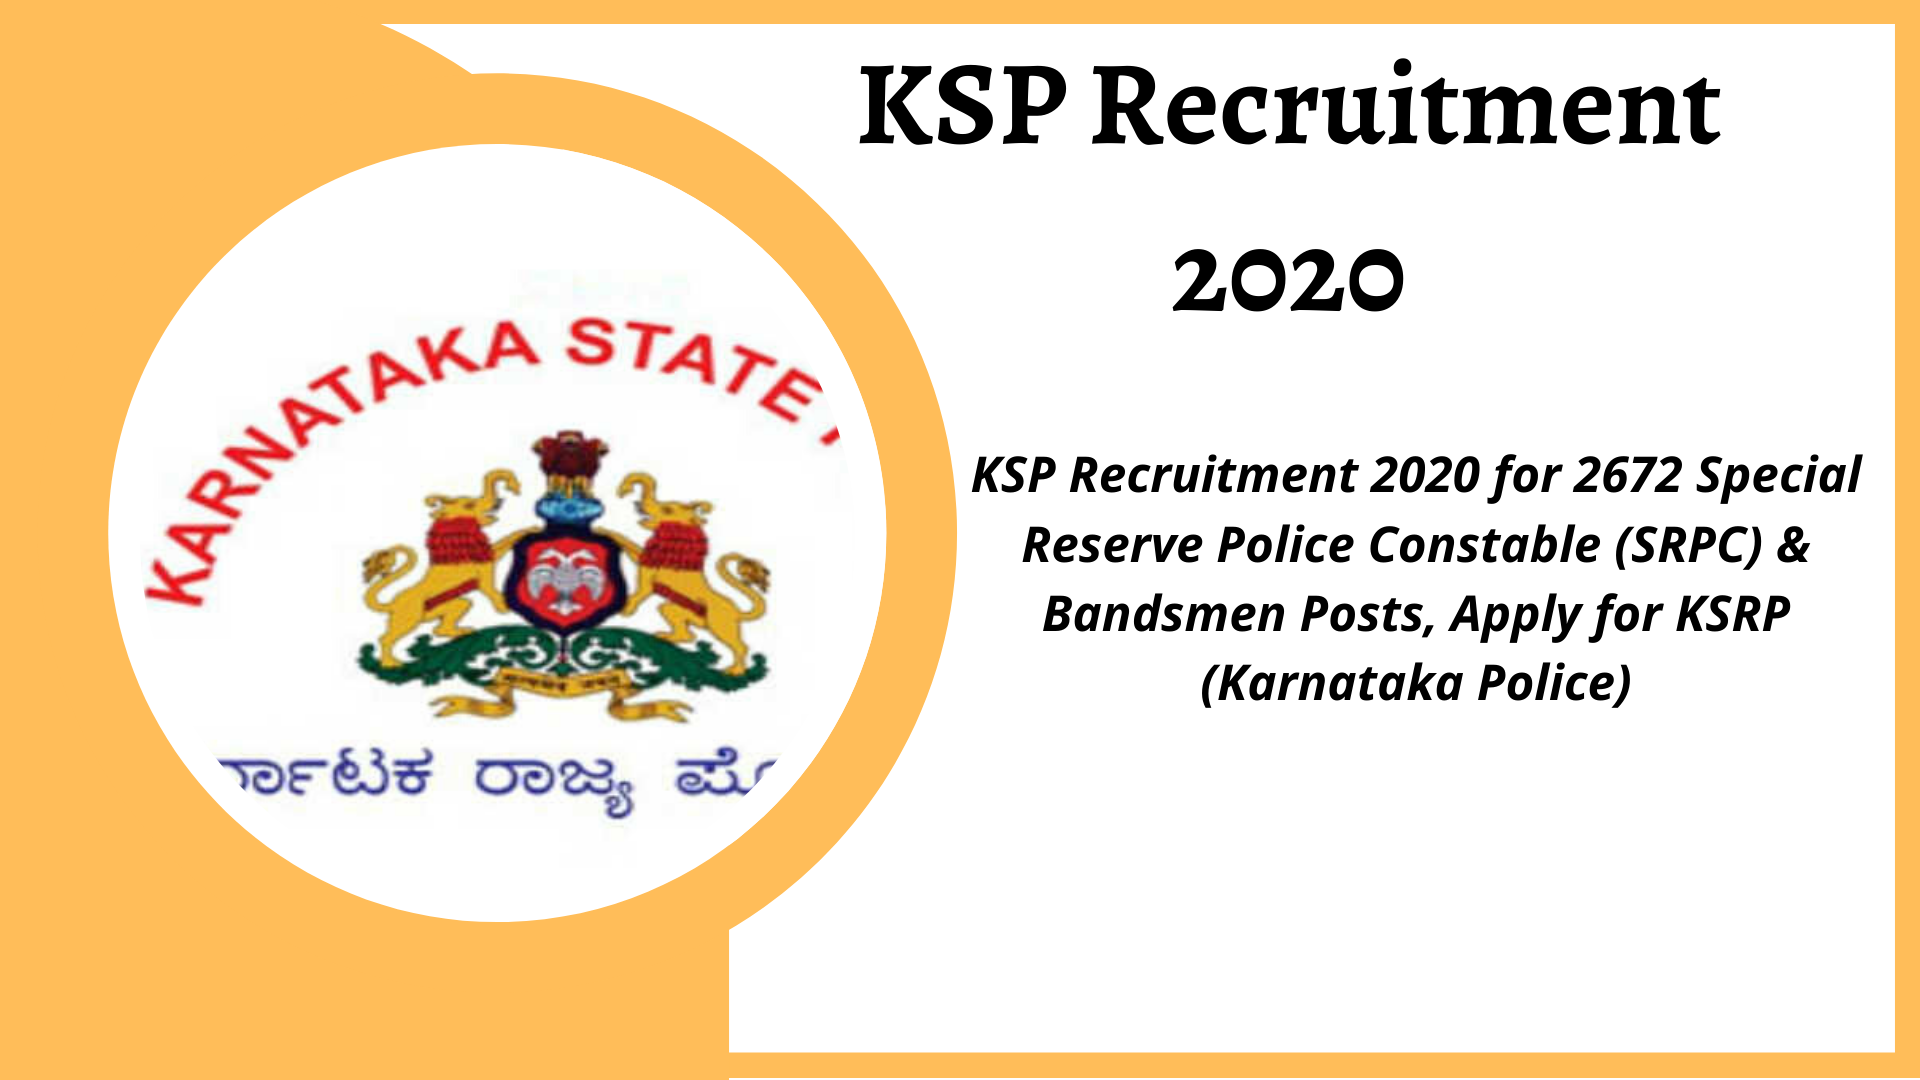 KSP Recruitment 2020 for 2672 Special Reserve Police Constable (SRPC) & Bandsmen Posts